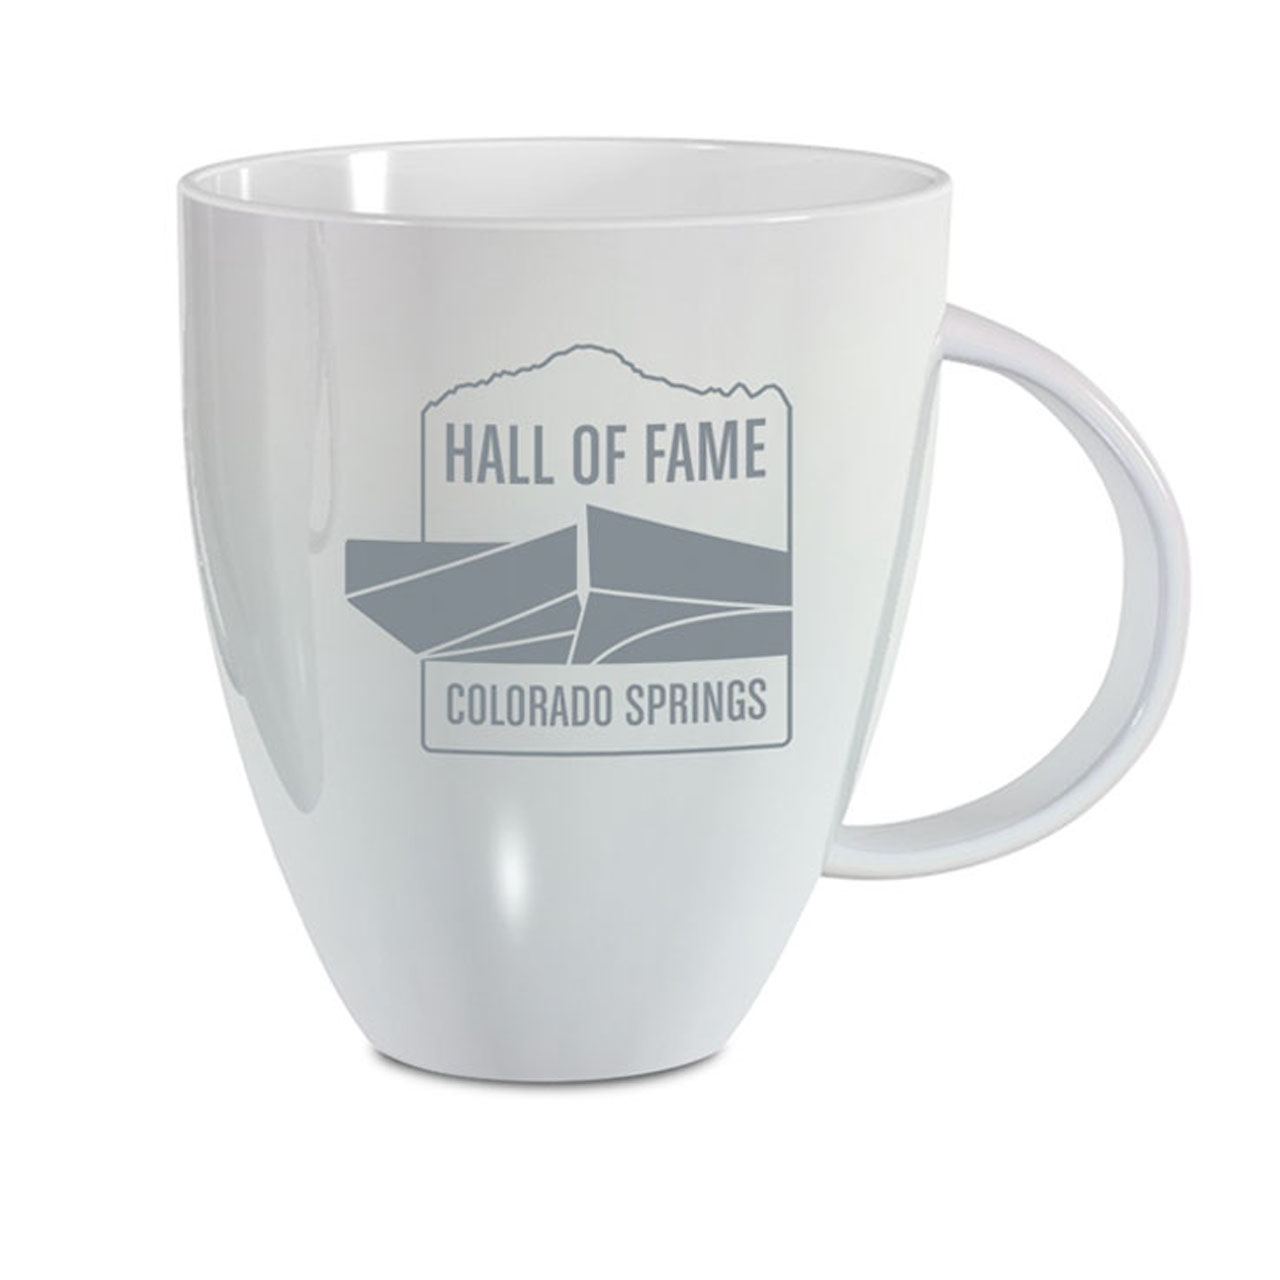 HALL OF FAME 18 OZ WHITE MUG